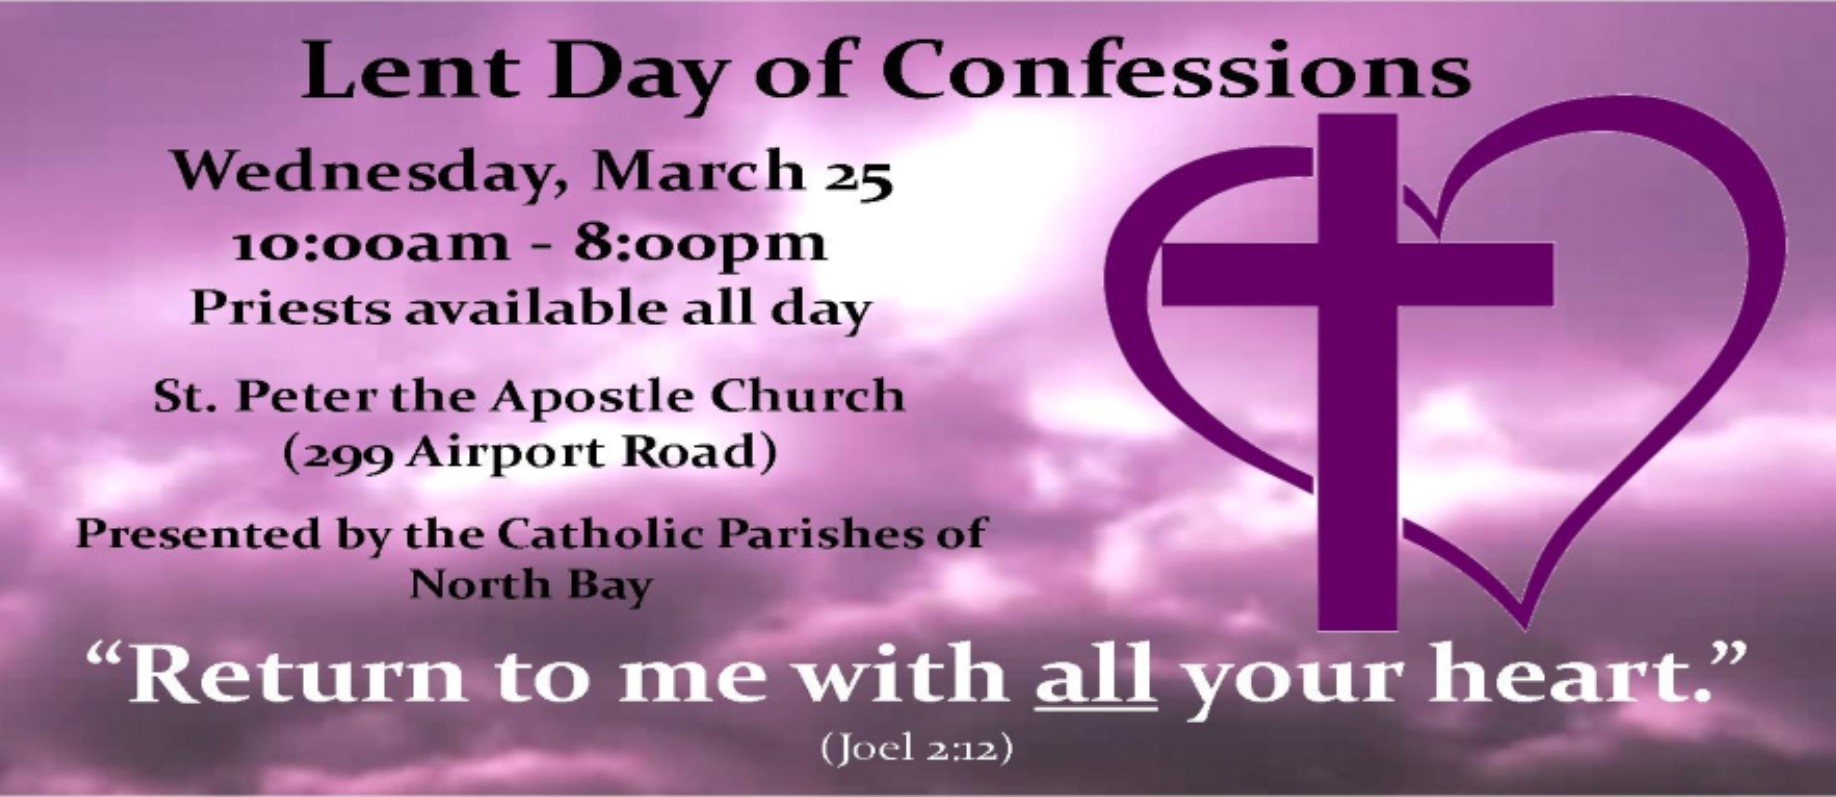 Lent Day of Confessions